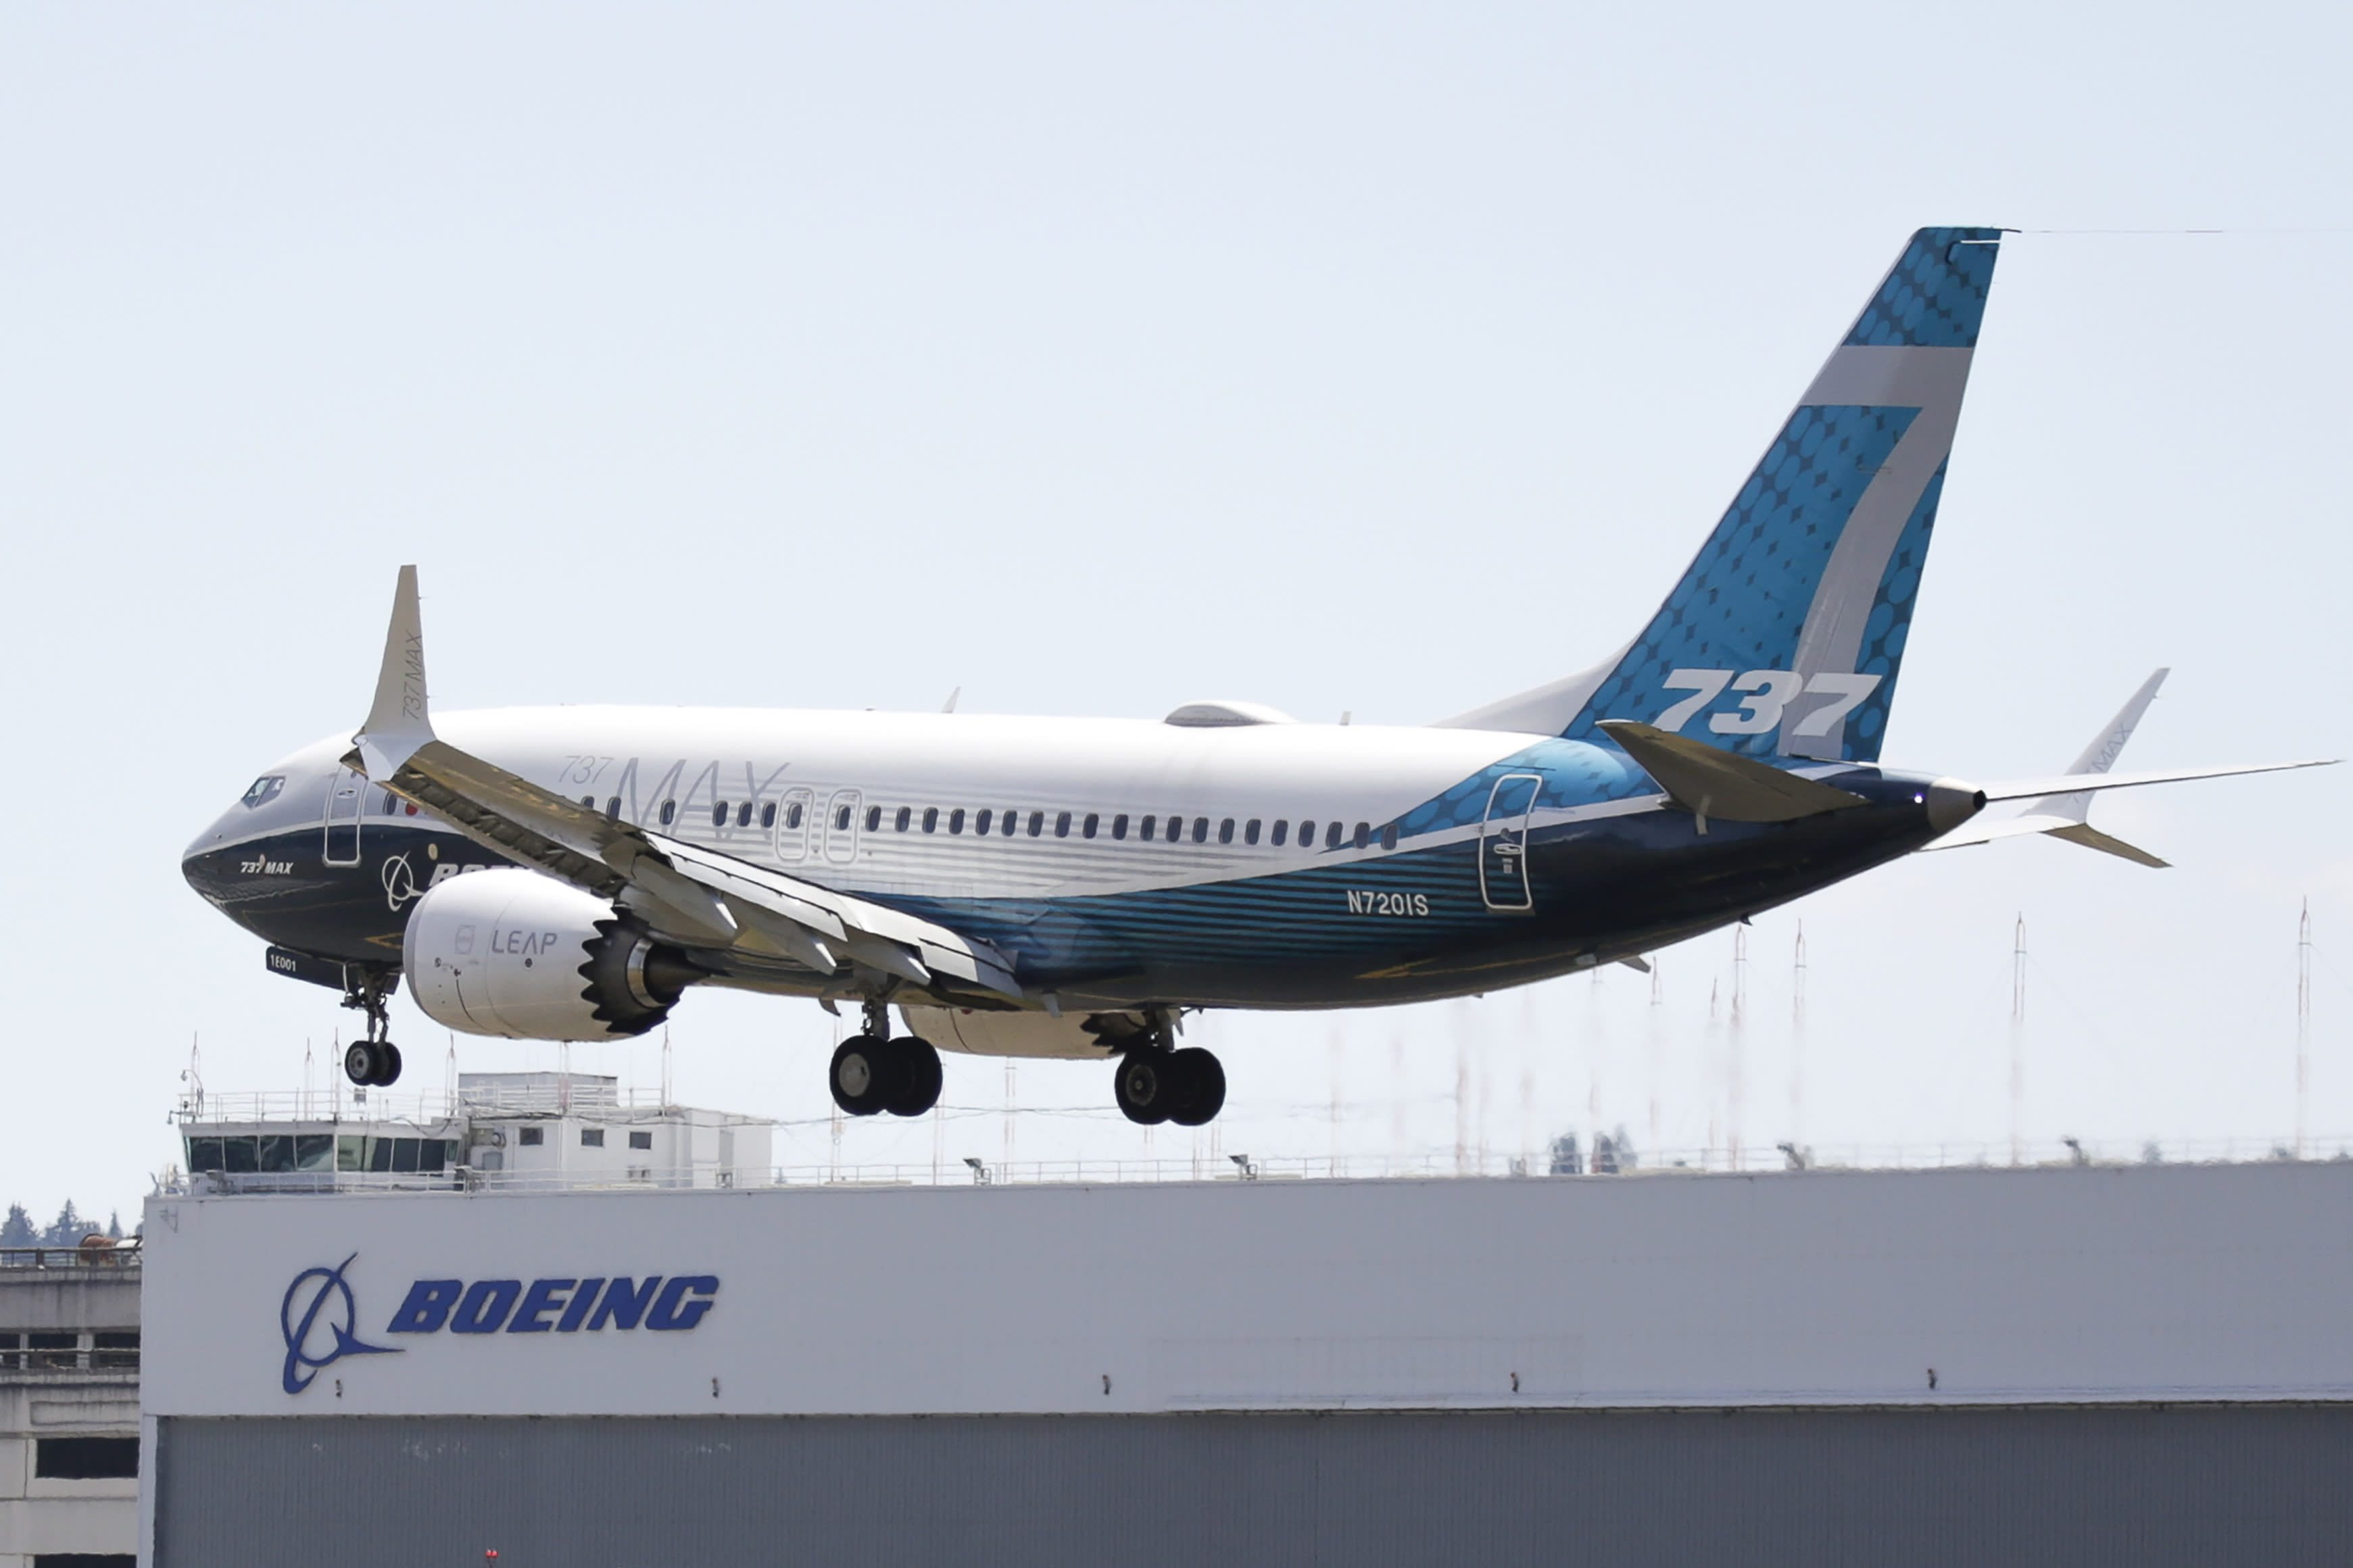 Boeing posts sixth consecutive quarterly loss, expects turning point in 2021